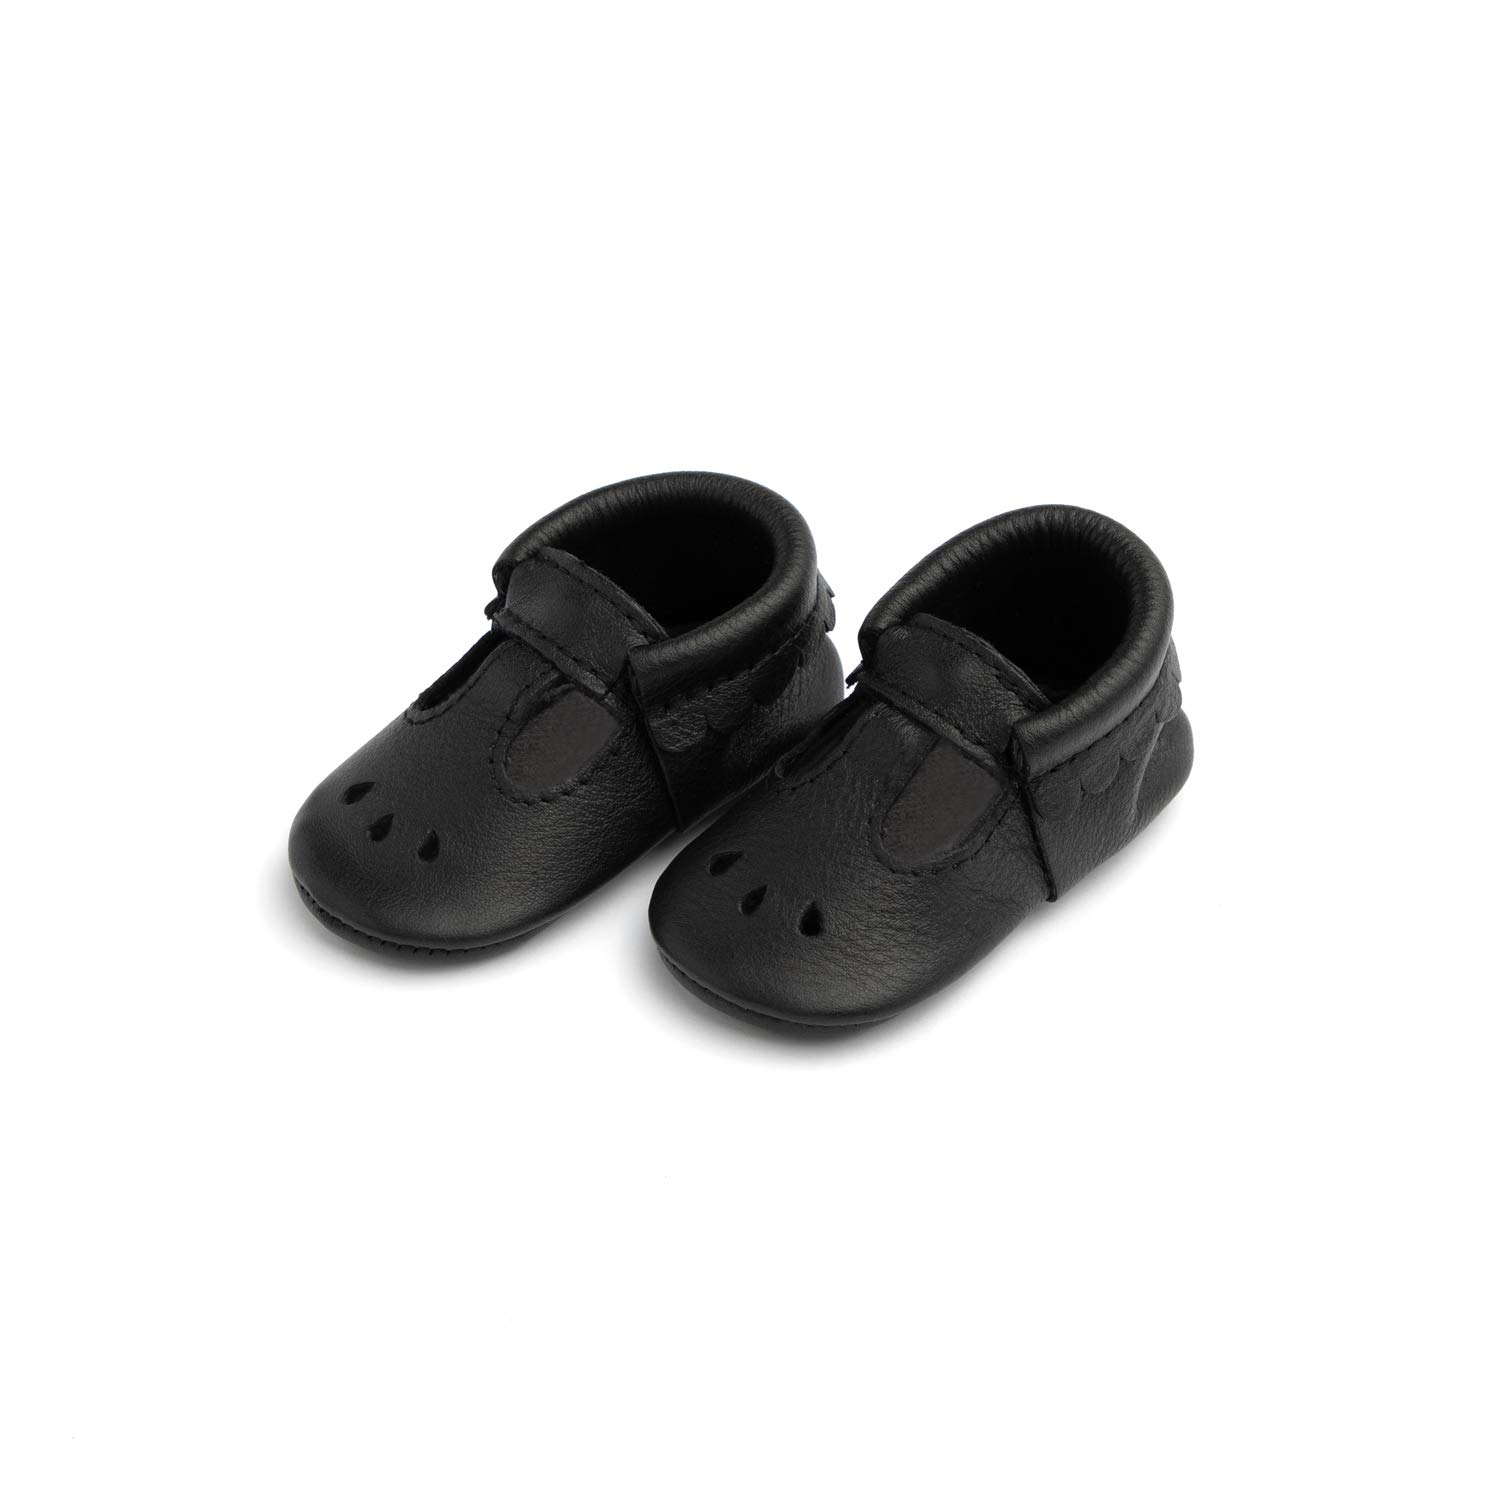 Freshly Picked - Rubber Mini Sole Leather Mary Jane Moccasins - Toddler Girl Shoes - Size 3 Ebony Black by Freshly Picked